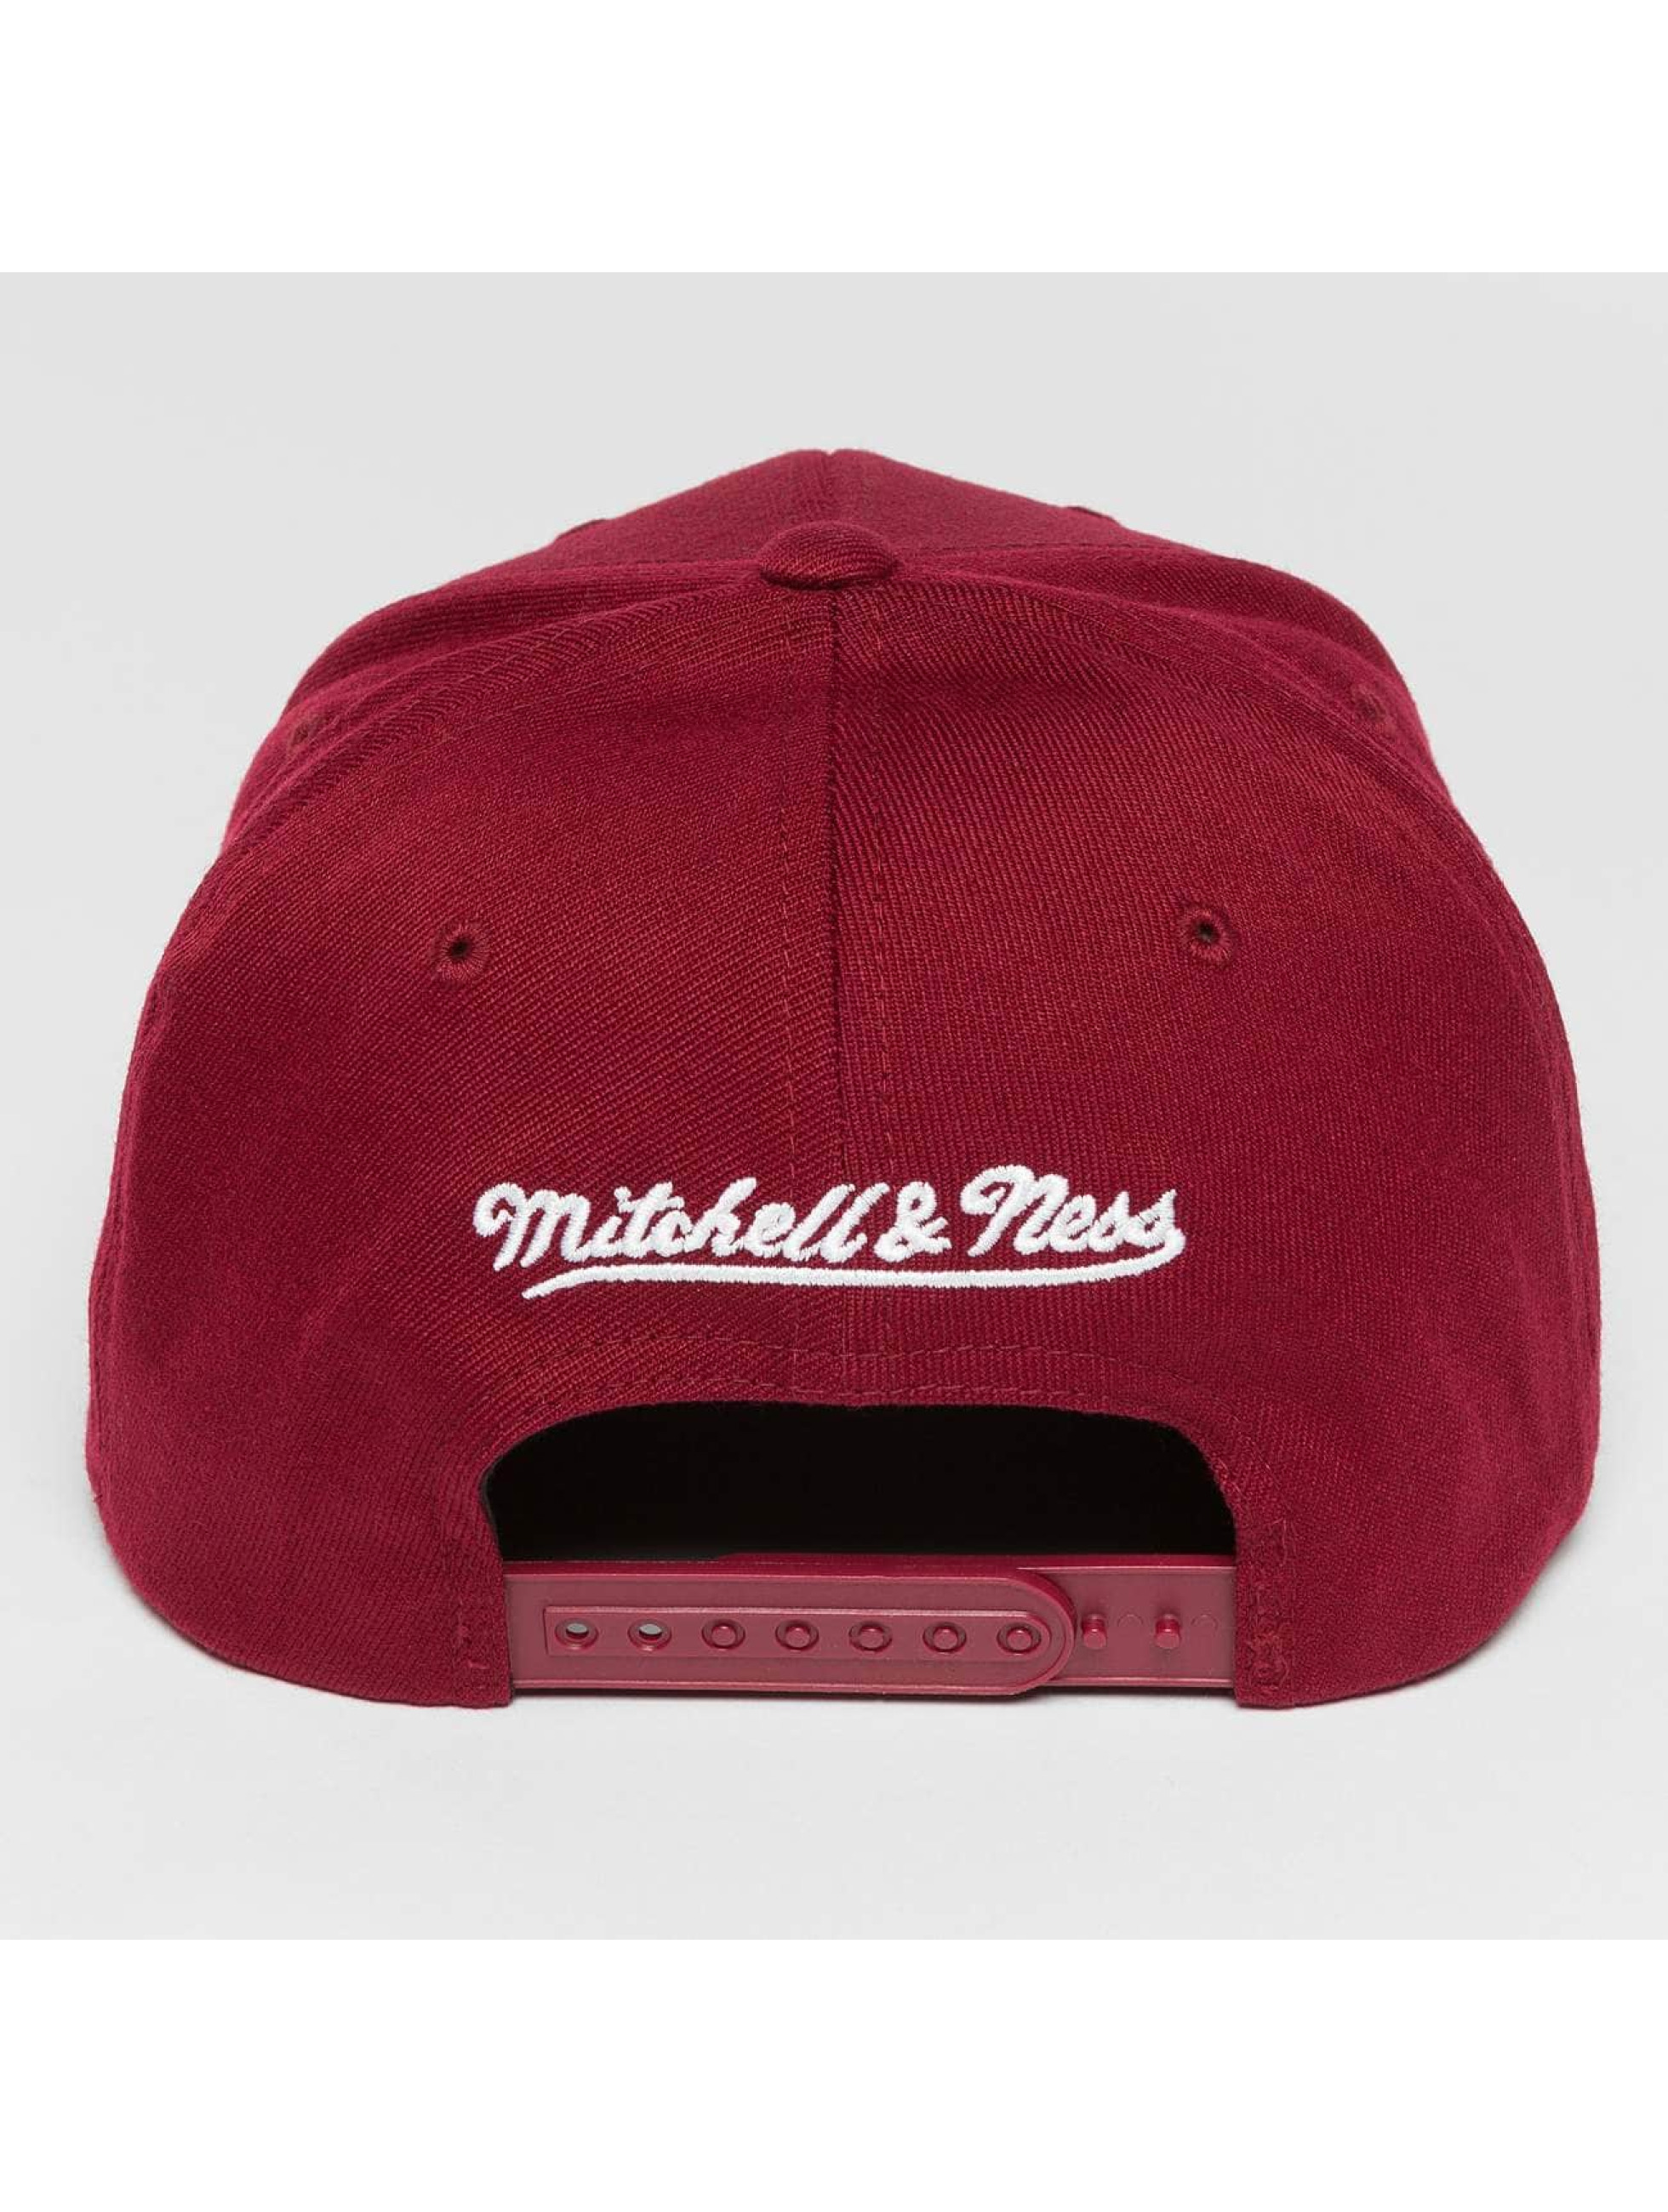 Mitchell & Ness Casquette Snapback & Strapback Blank Flat Peak 110 Curved rouge